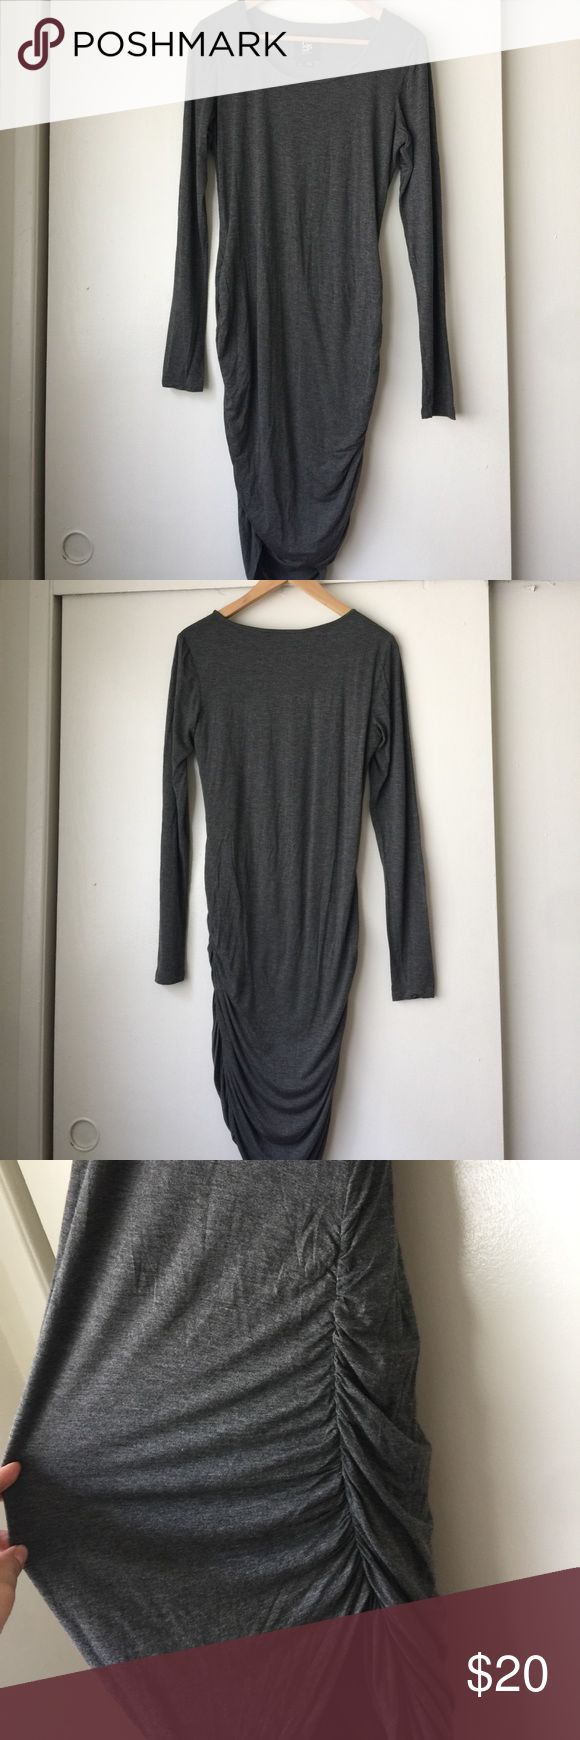 Barneys New york Shirred Dress Modal side shirring dress. Worn one time. Good condition. Barneys New York CO-OP Dresses Mini